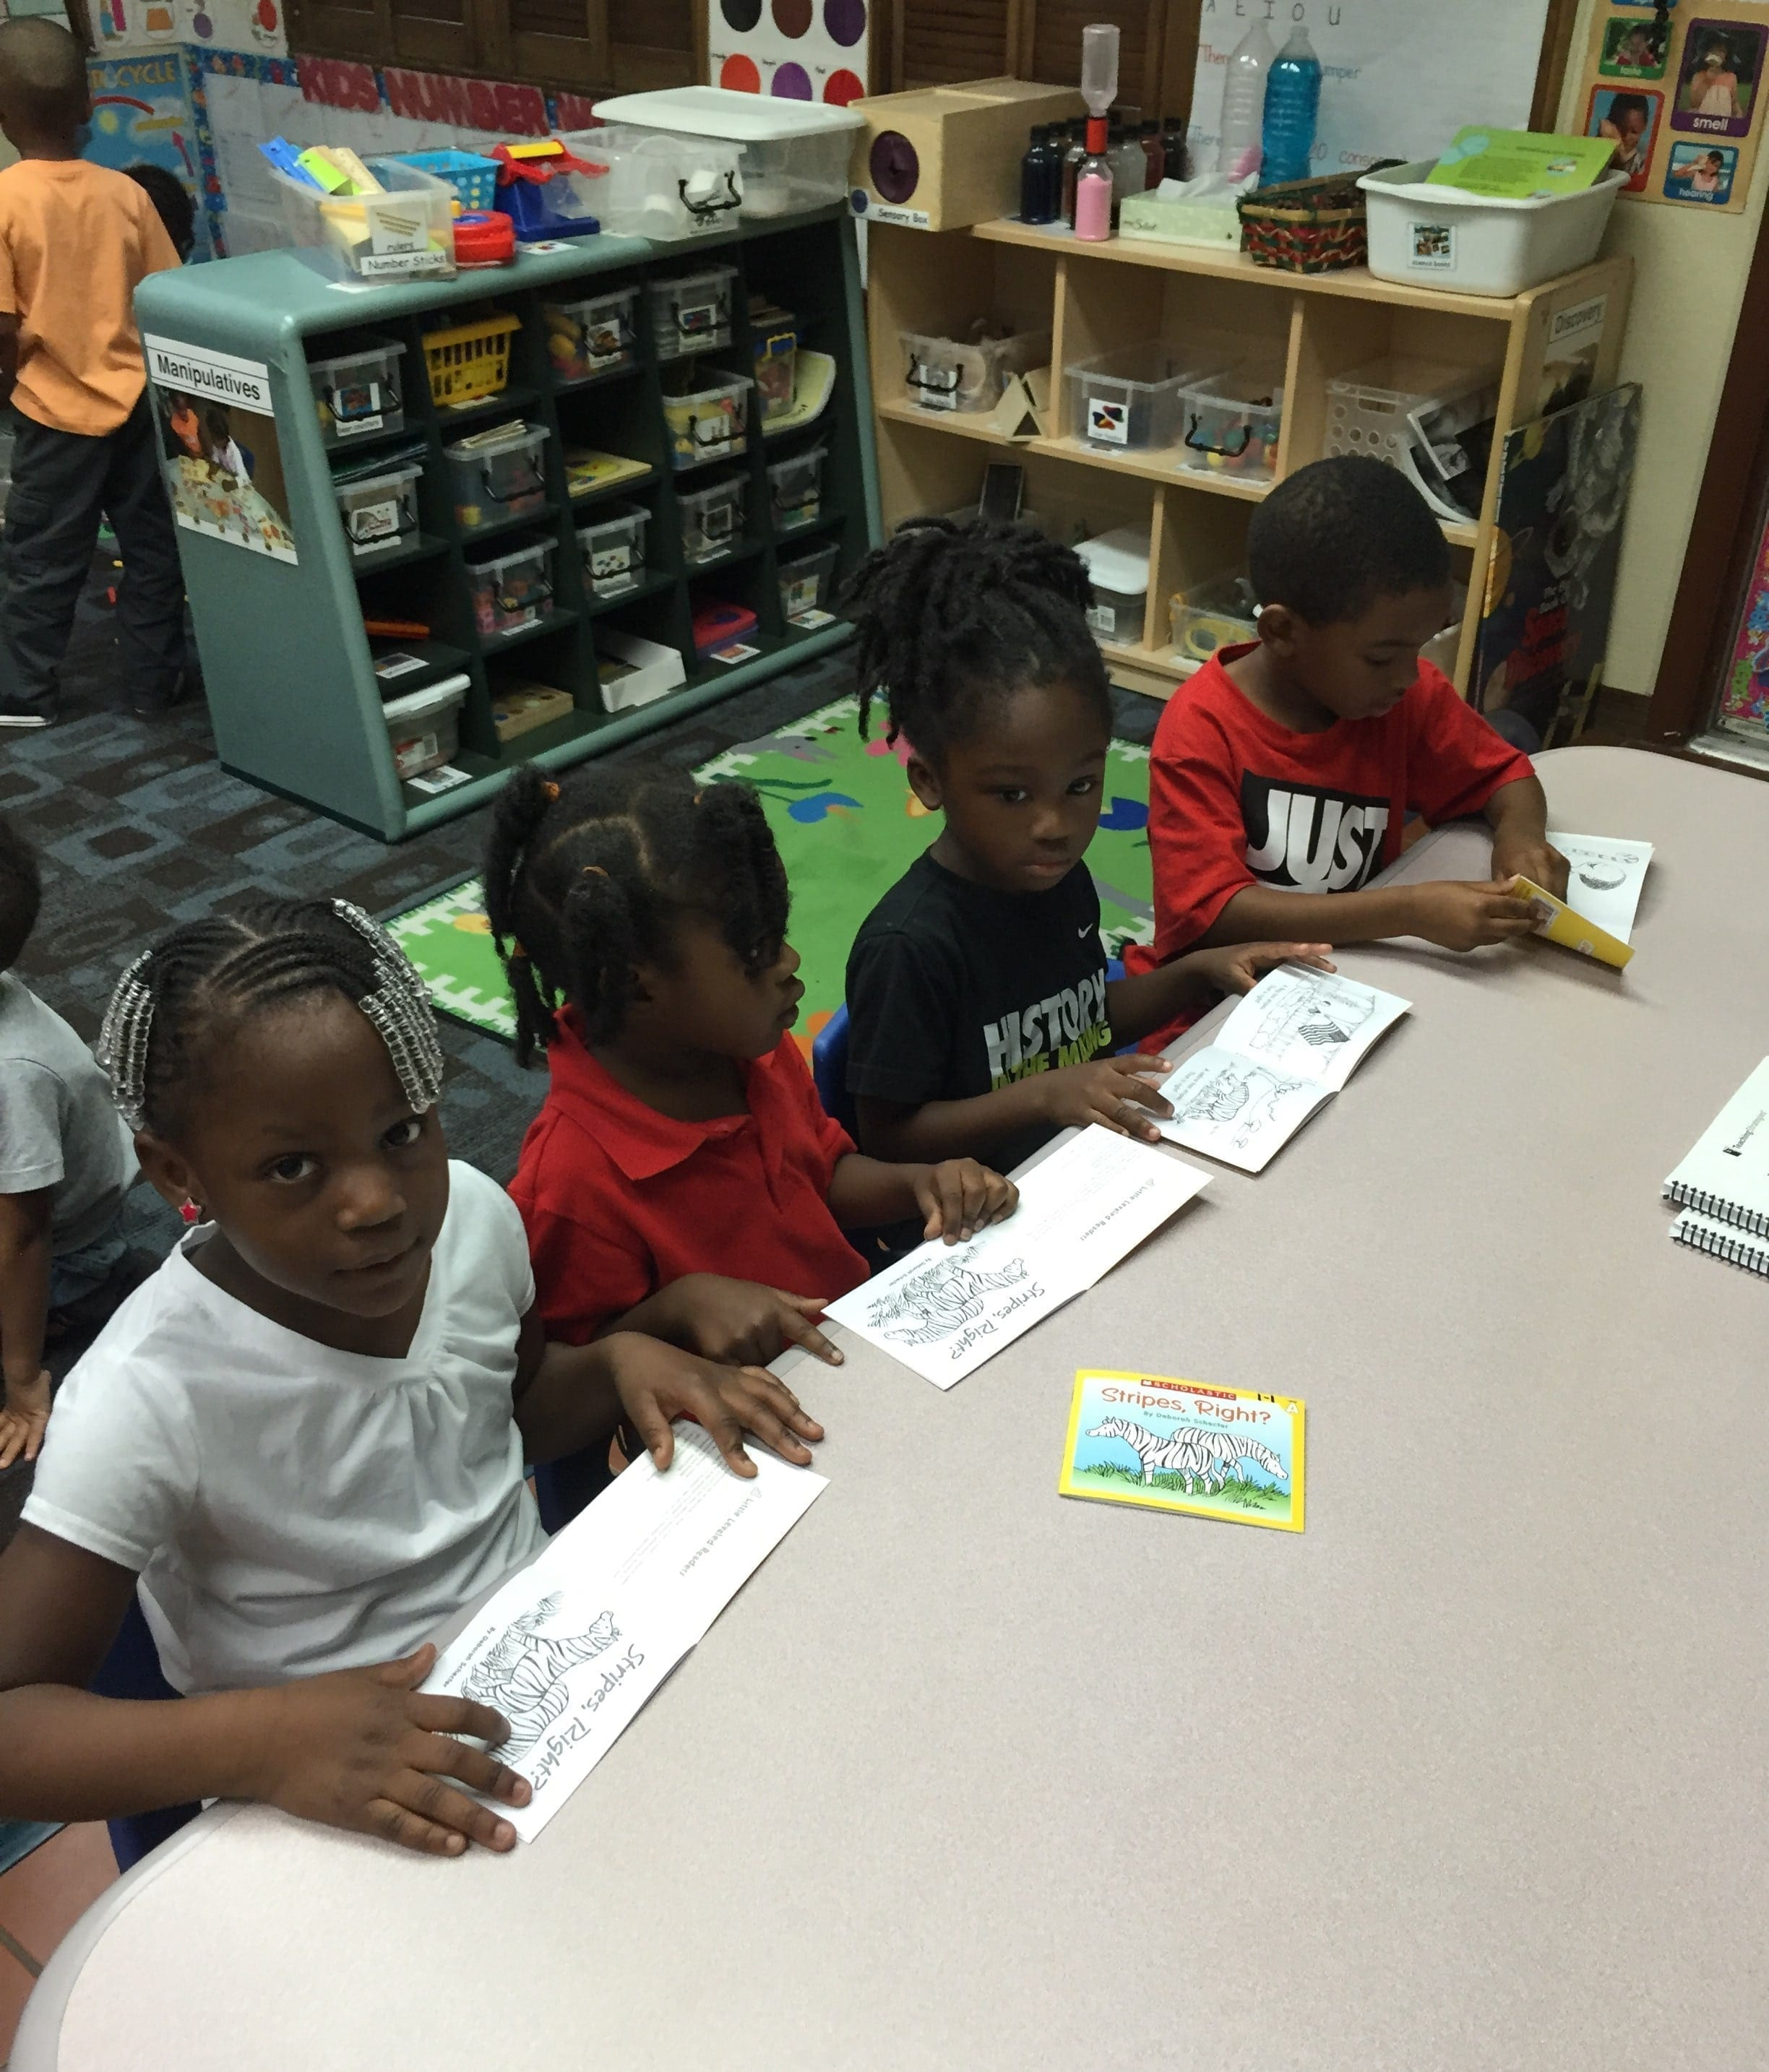 VPK A plantation beginner reading books